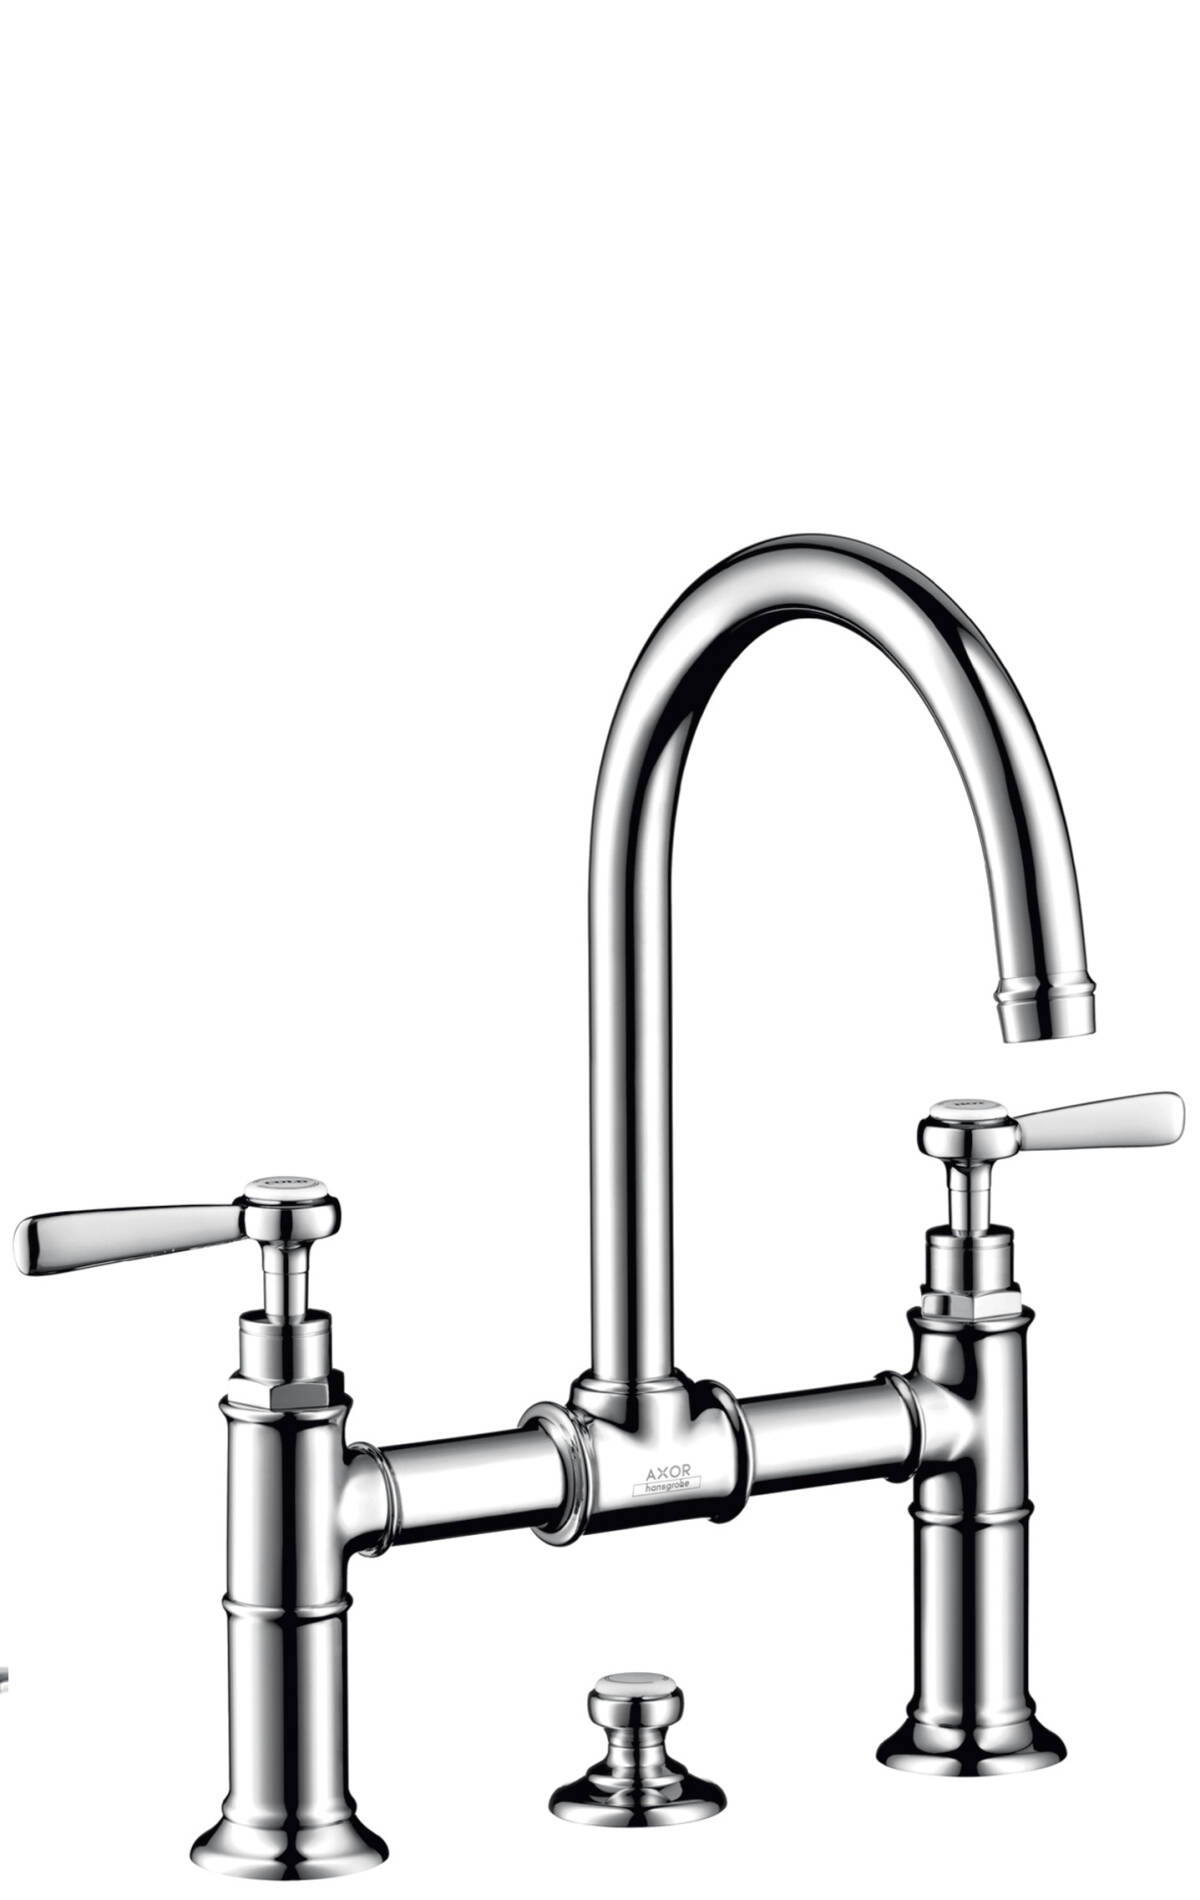 2-handle basin mixer 220 with lever handles and pop-up waste set, Chrome, 16511000